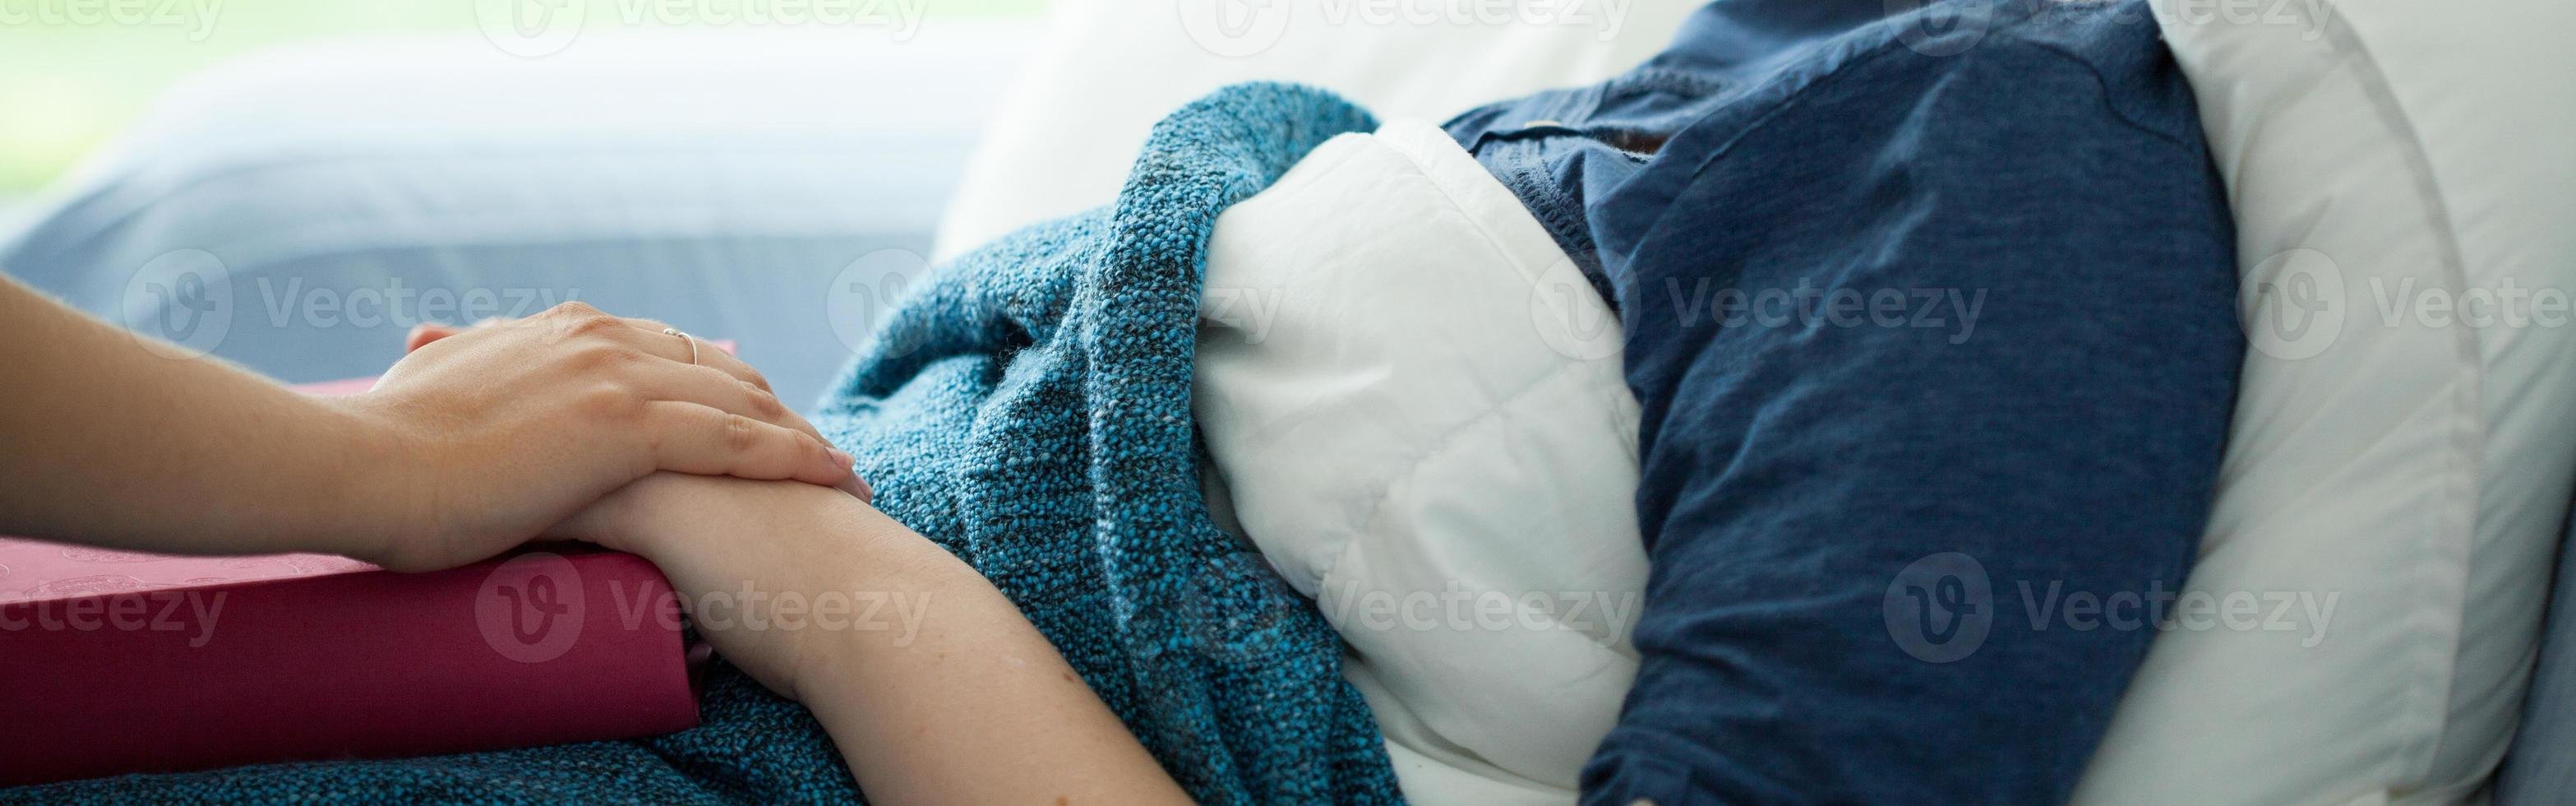 Woman lying in bed being handheld by another person photo